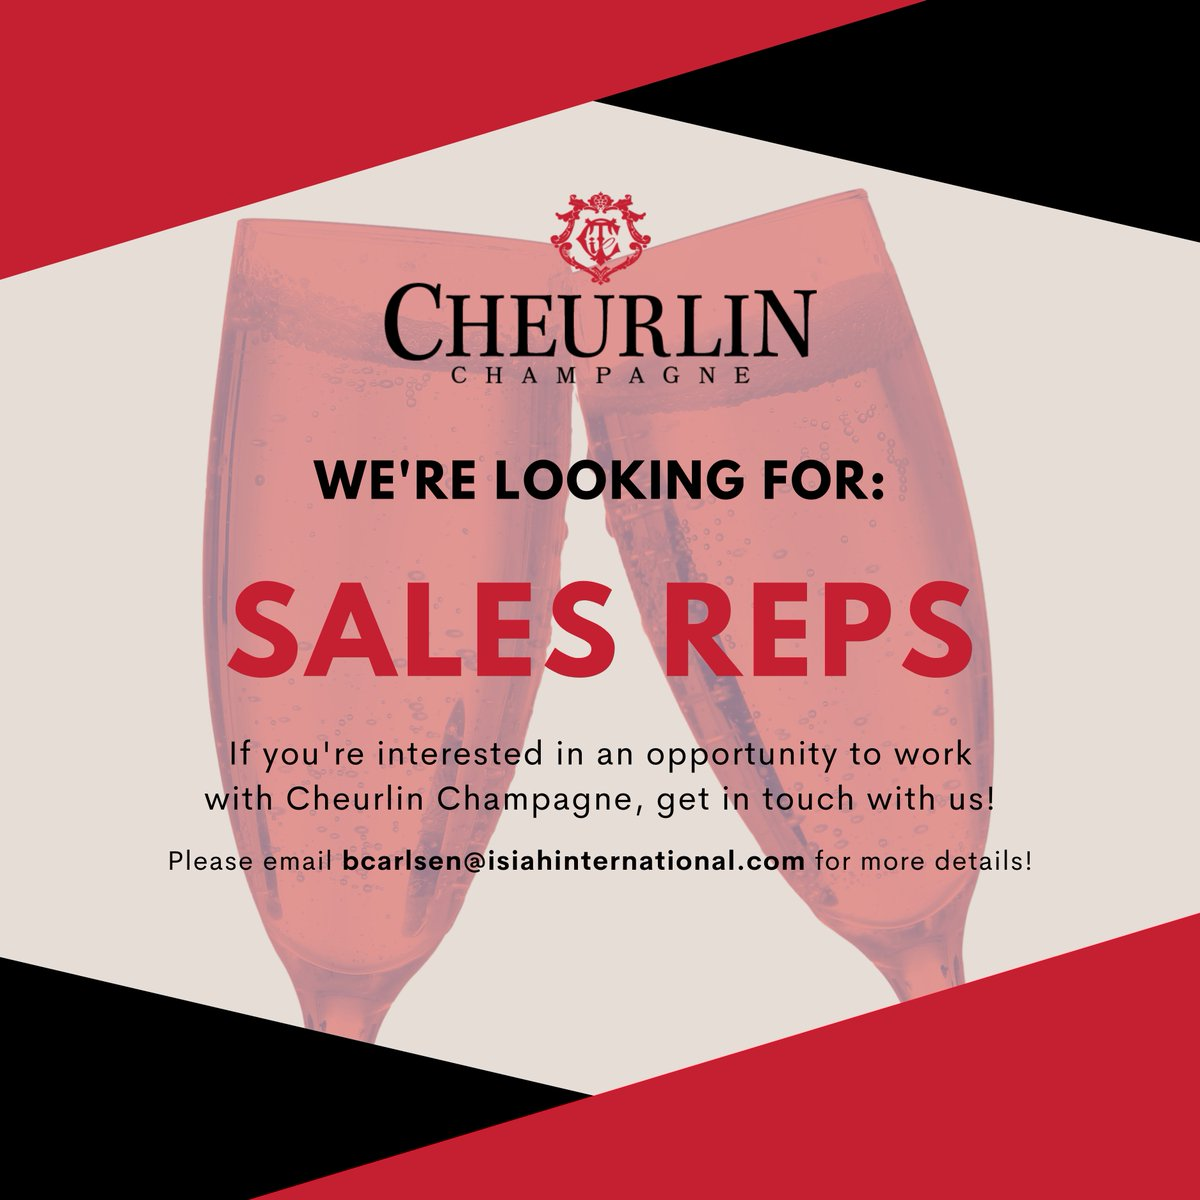 We're looking to expand our Cheurlin team in various states! If you're interested & think you might be qualified as a sales rep, please email us! #Cheurlin1788